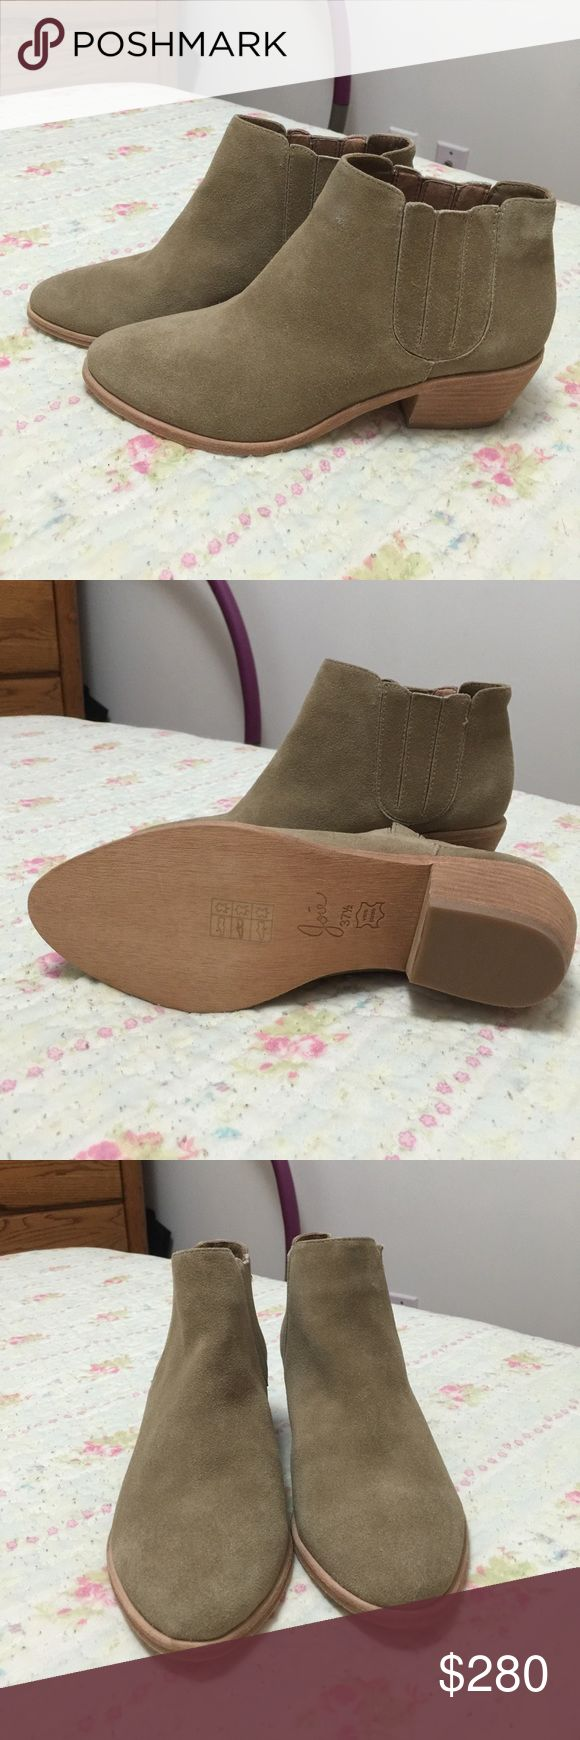 Joie shoes It's half ankle boots, brand new. It is just doesn't fit on me Joie Shoes Ankle Boots & Booties